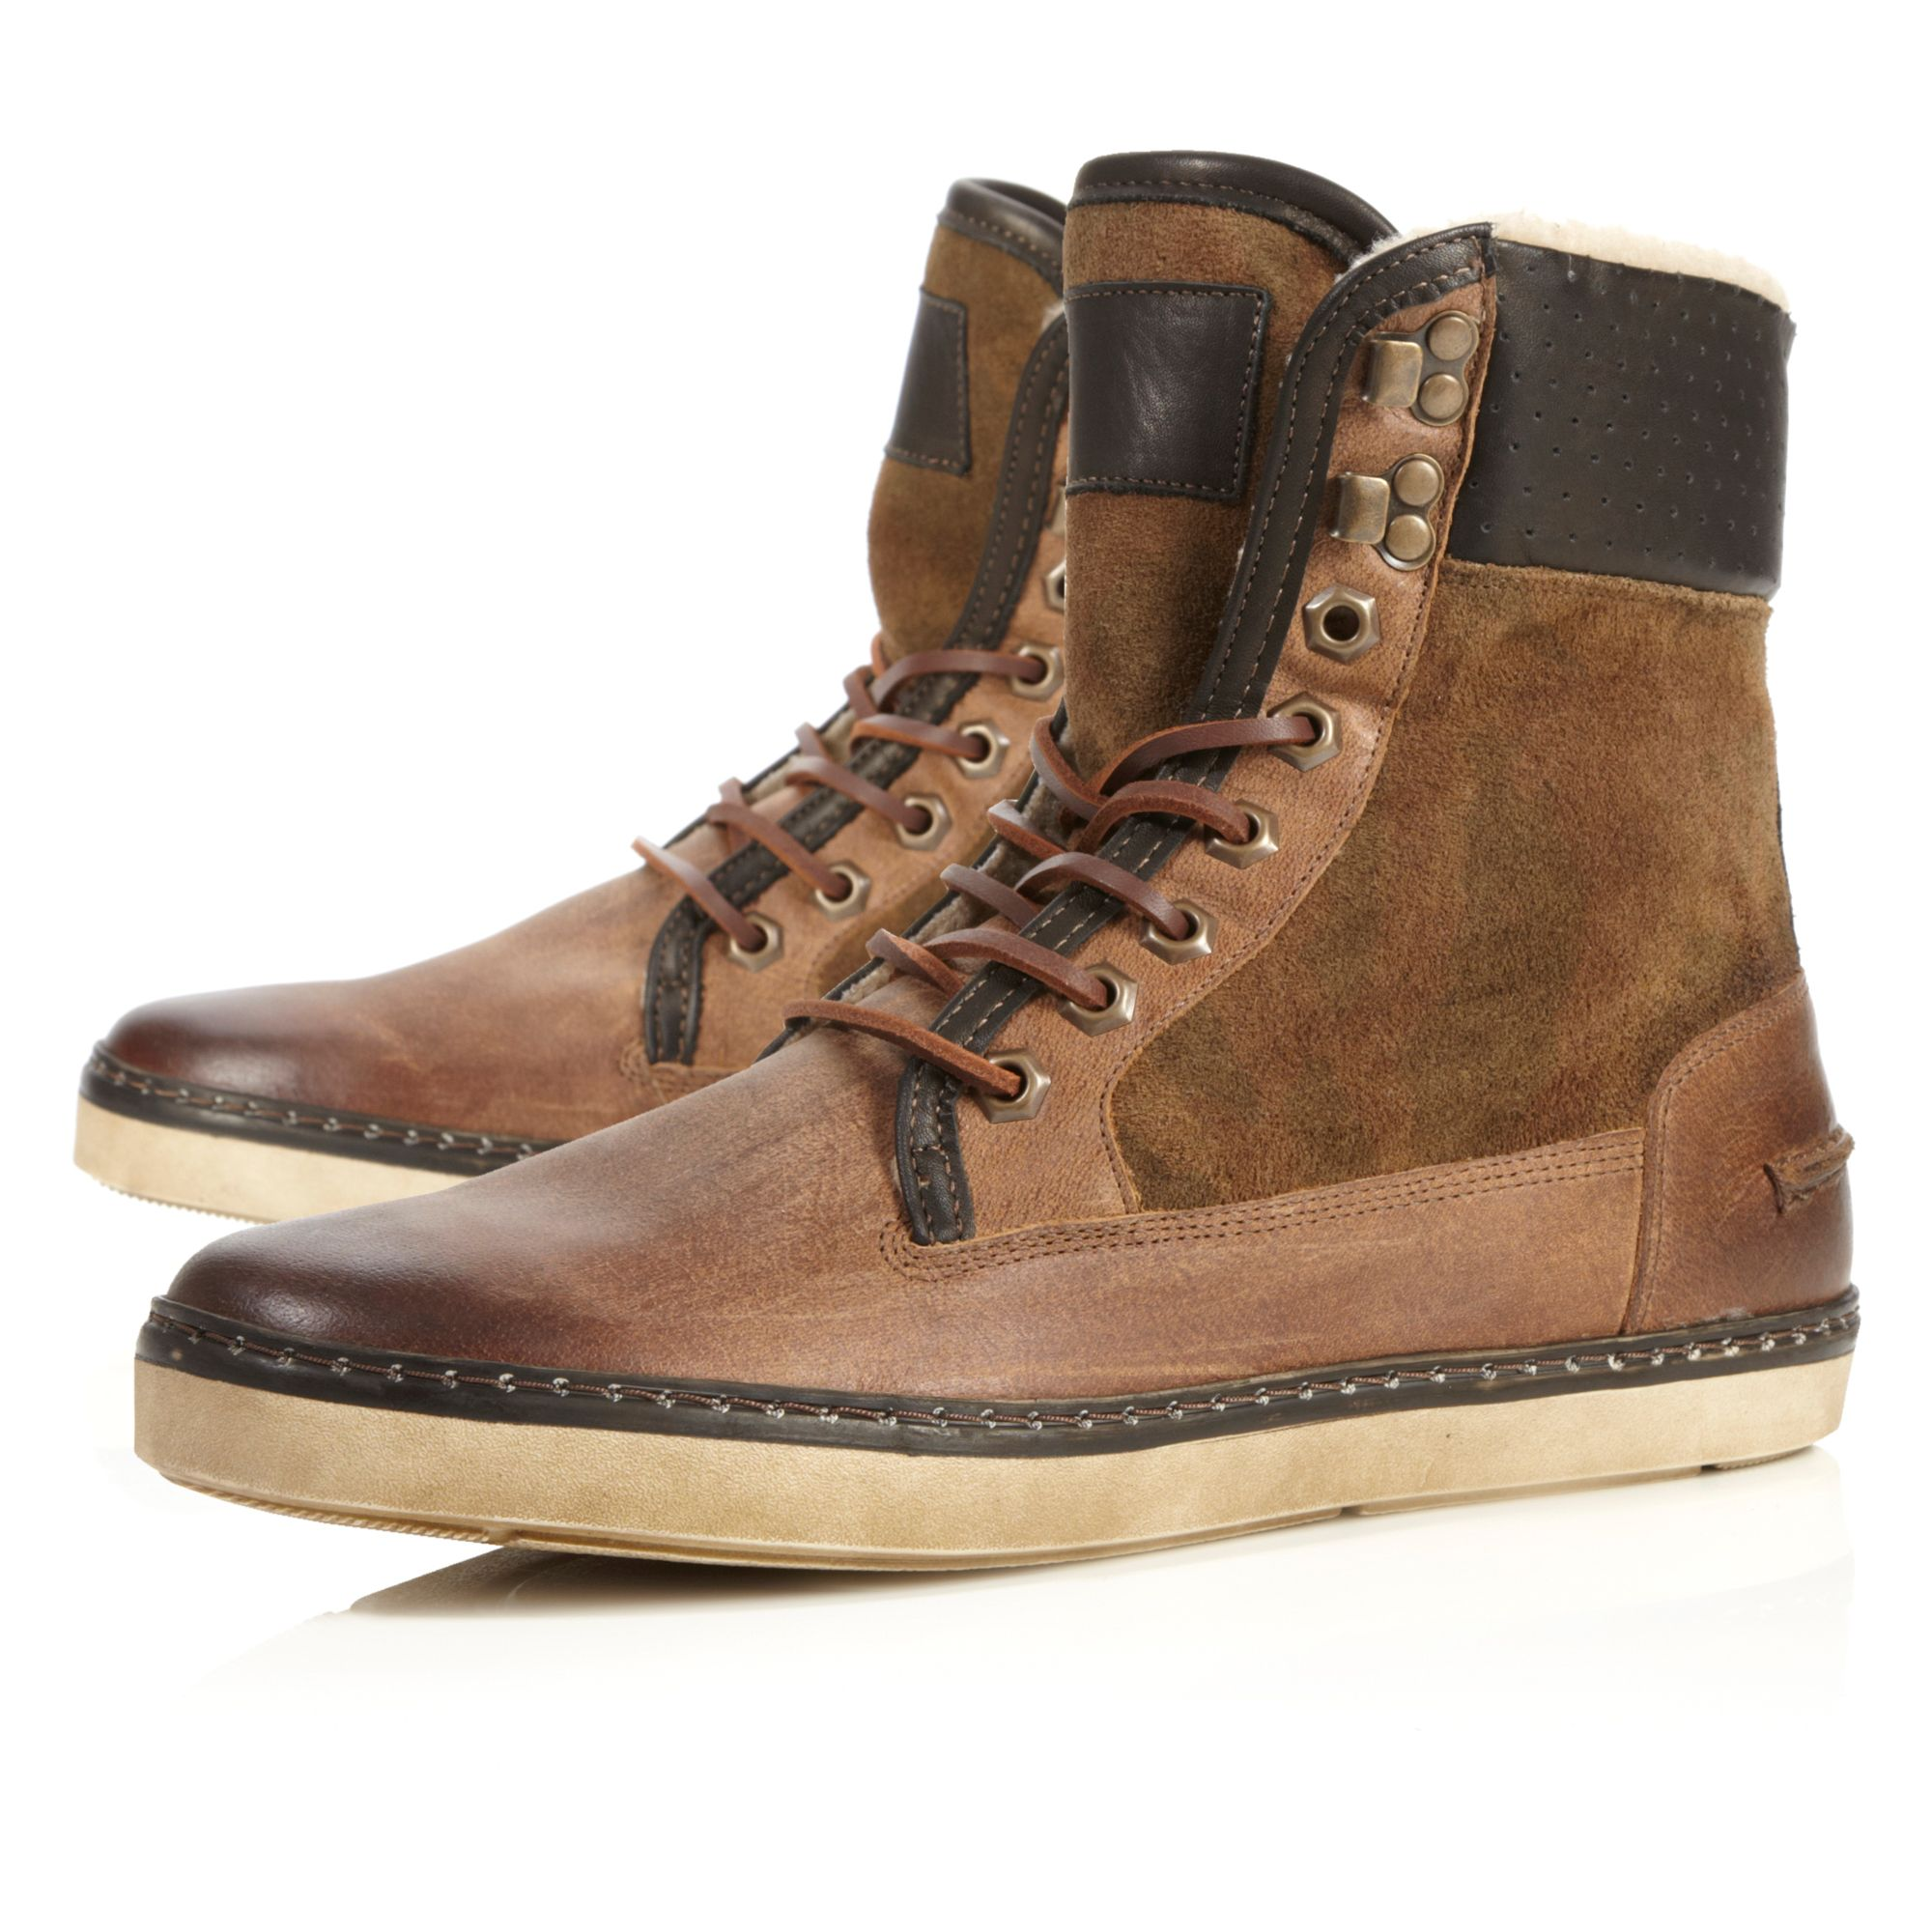 Crypton camouflage lace up boot